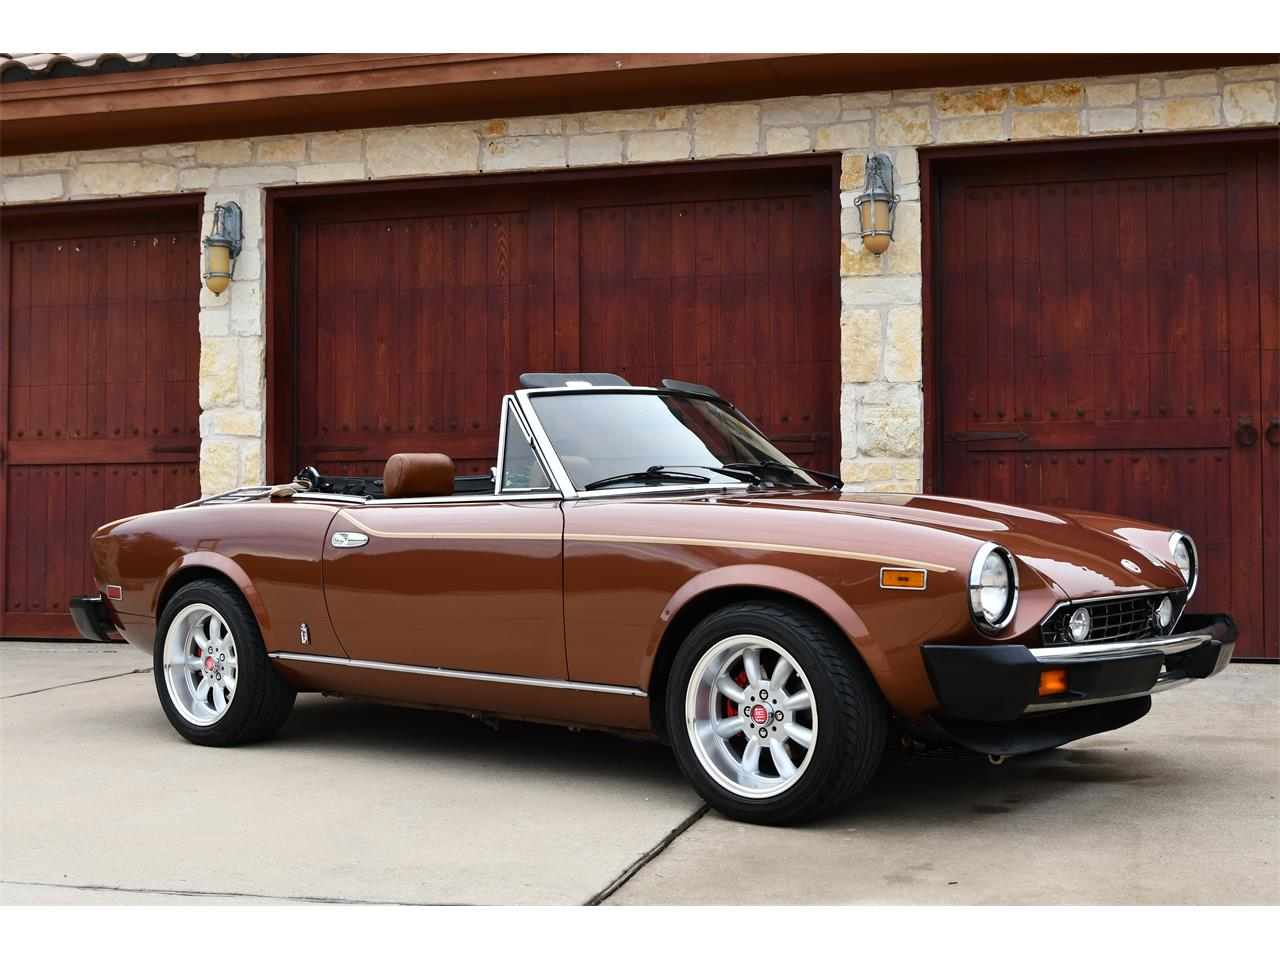 1982 Fiat Spider for sale in Spicewood, TX – photo 8